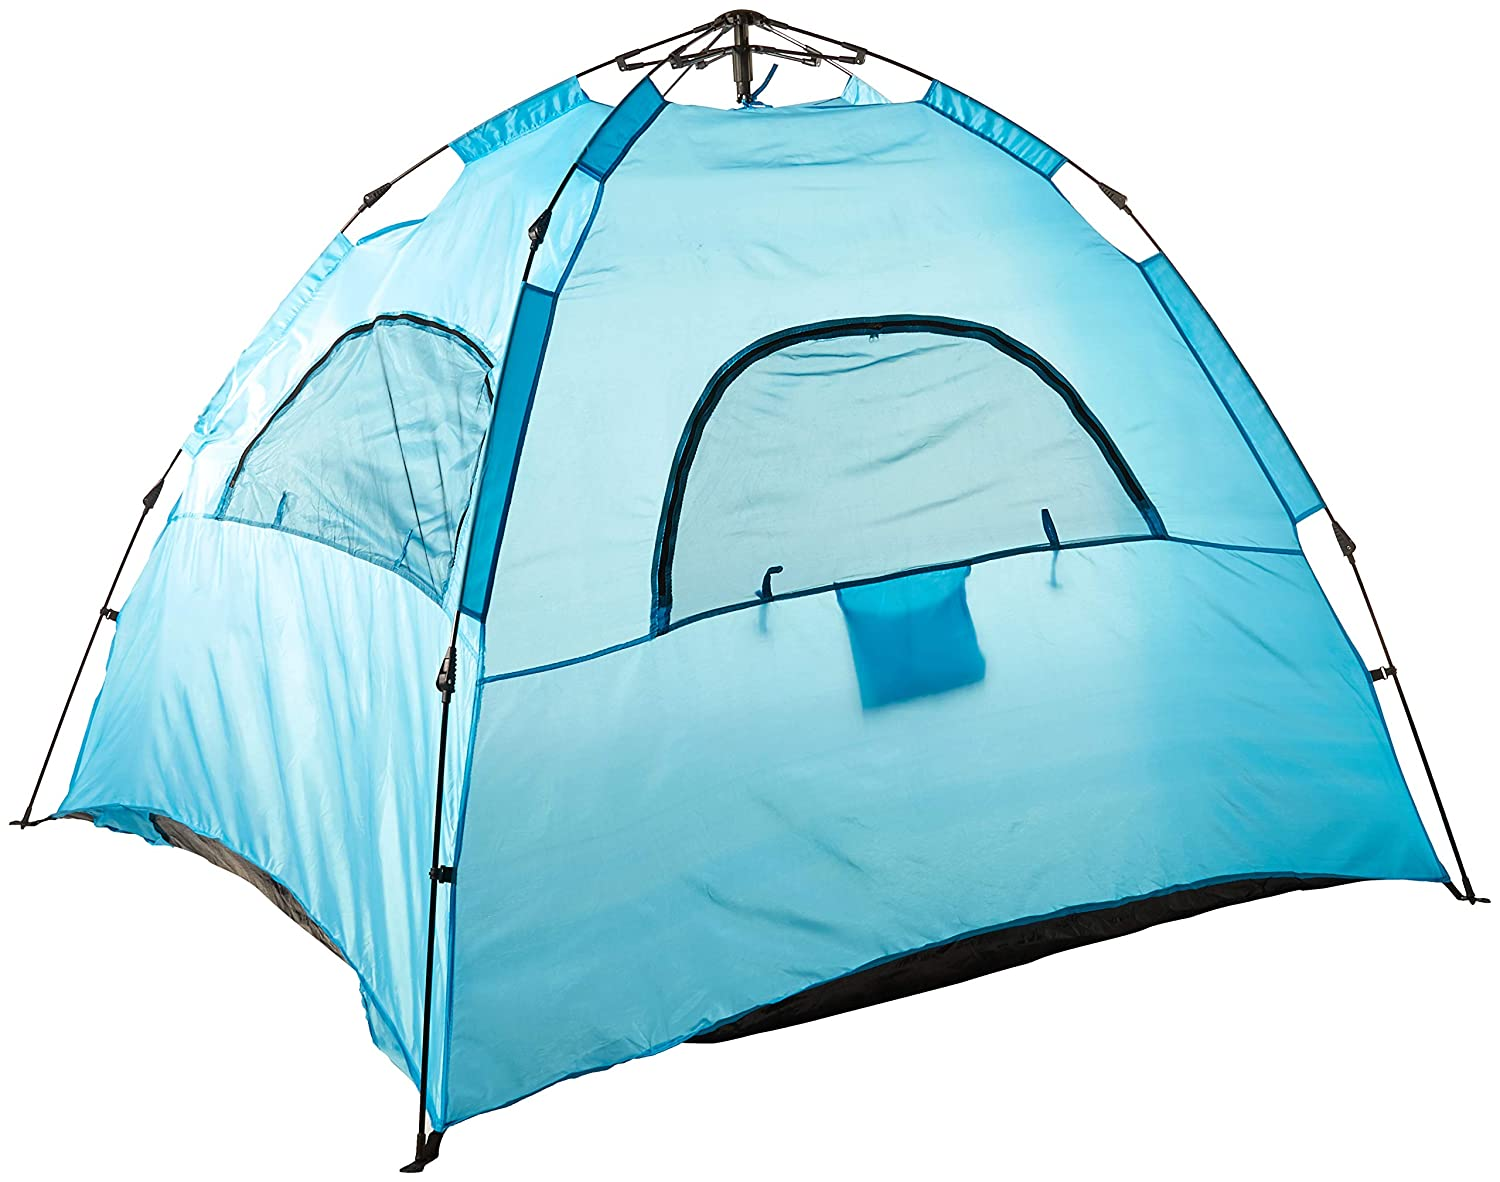 AfterGen Easy Setup Beach Tent Portable Pull to Open Sun Shelter Strong UV Protection Sun Shade Sand Surf Instant Pop-Up Umbrella